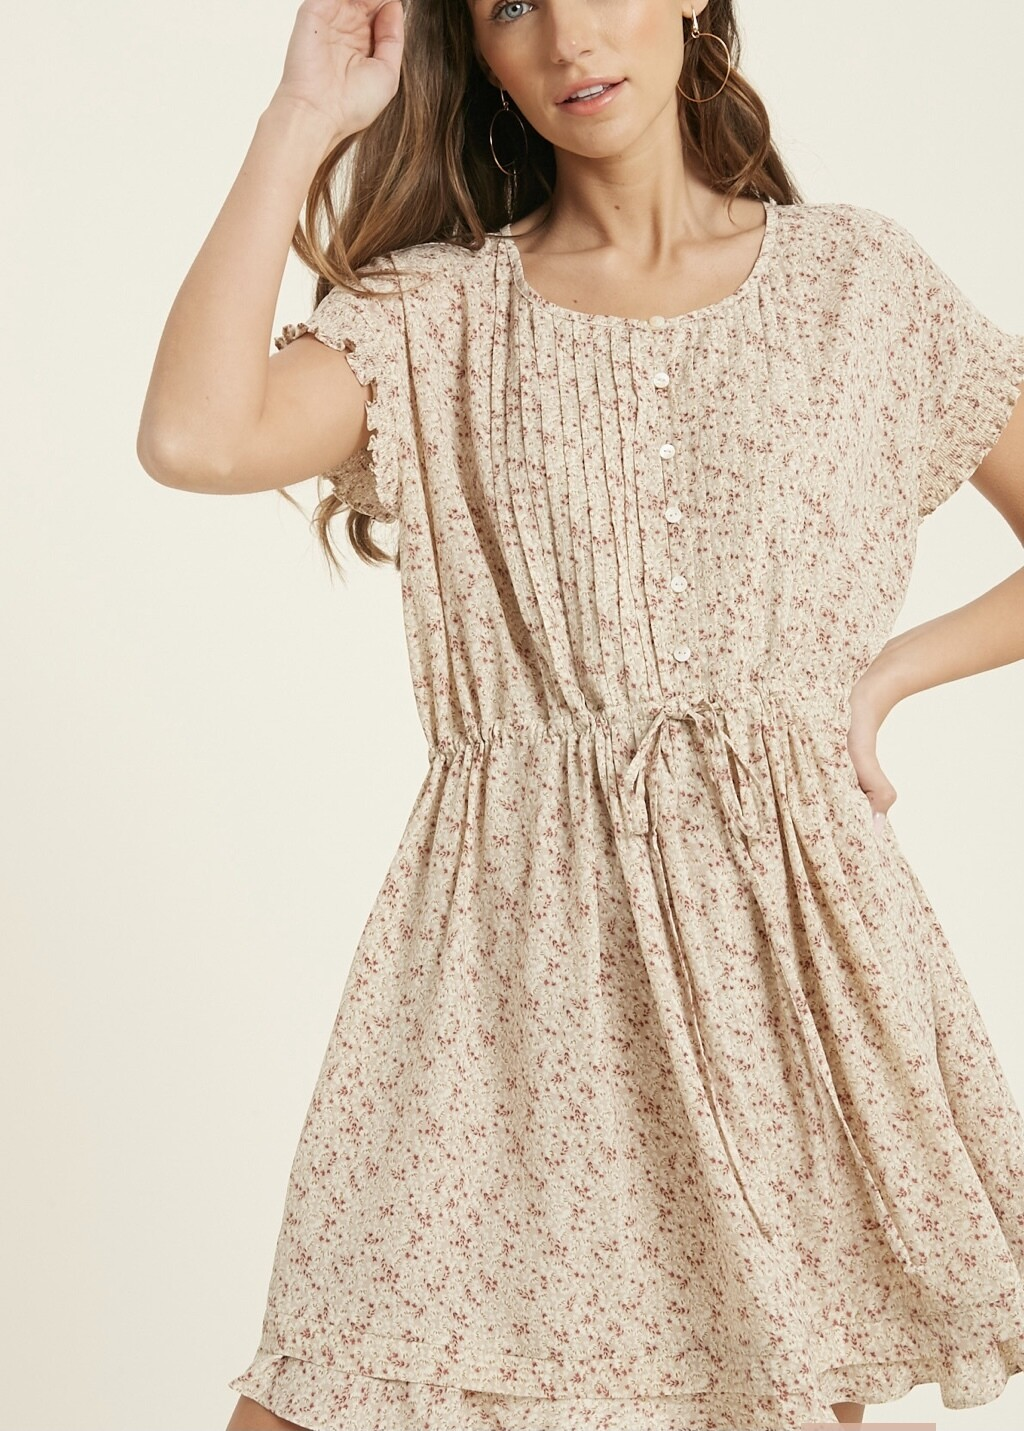 CARRY OUT KINDNESS DRESS